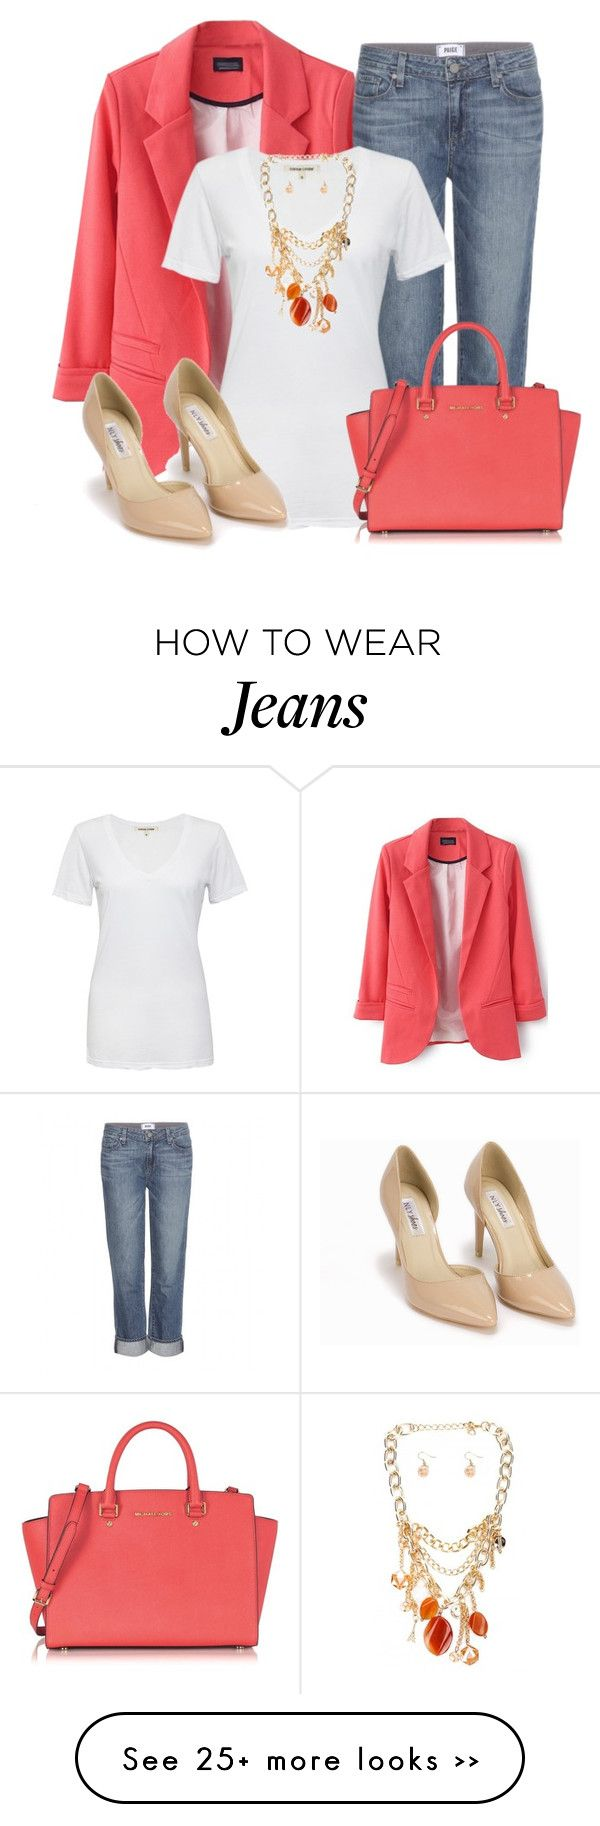 """""""White T Shirt and Jeans"""" by lchar on Polyvore featuring Paige Denim, Cotton Citizen, Michael Kors and Nly Shoes"""